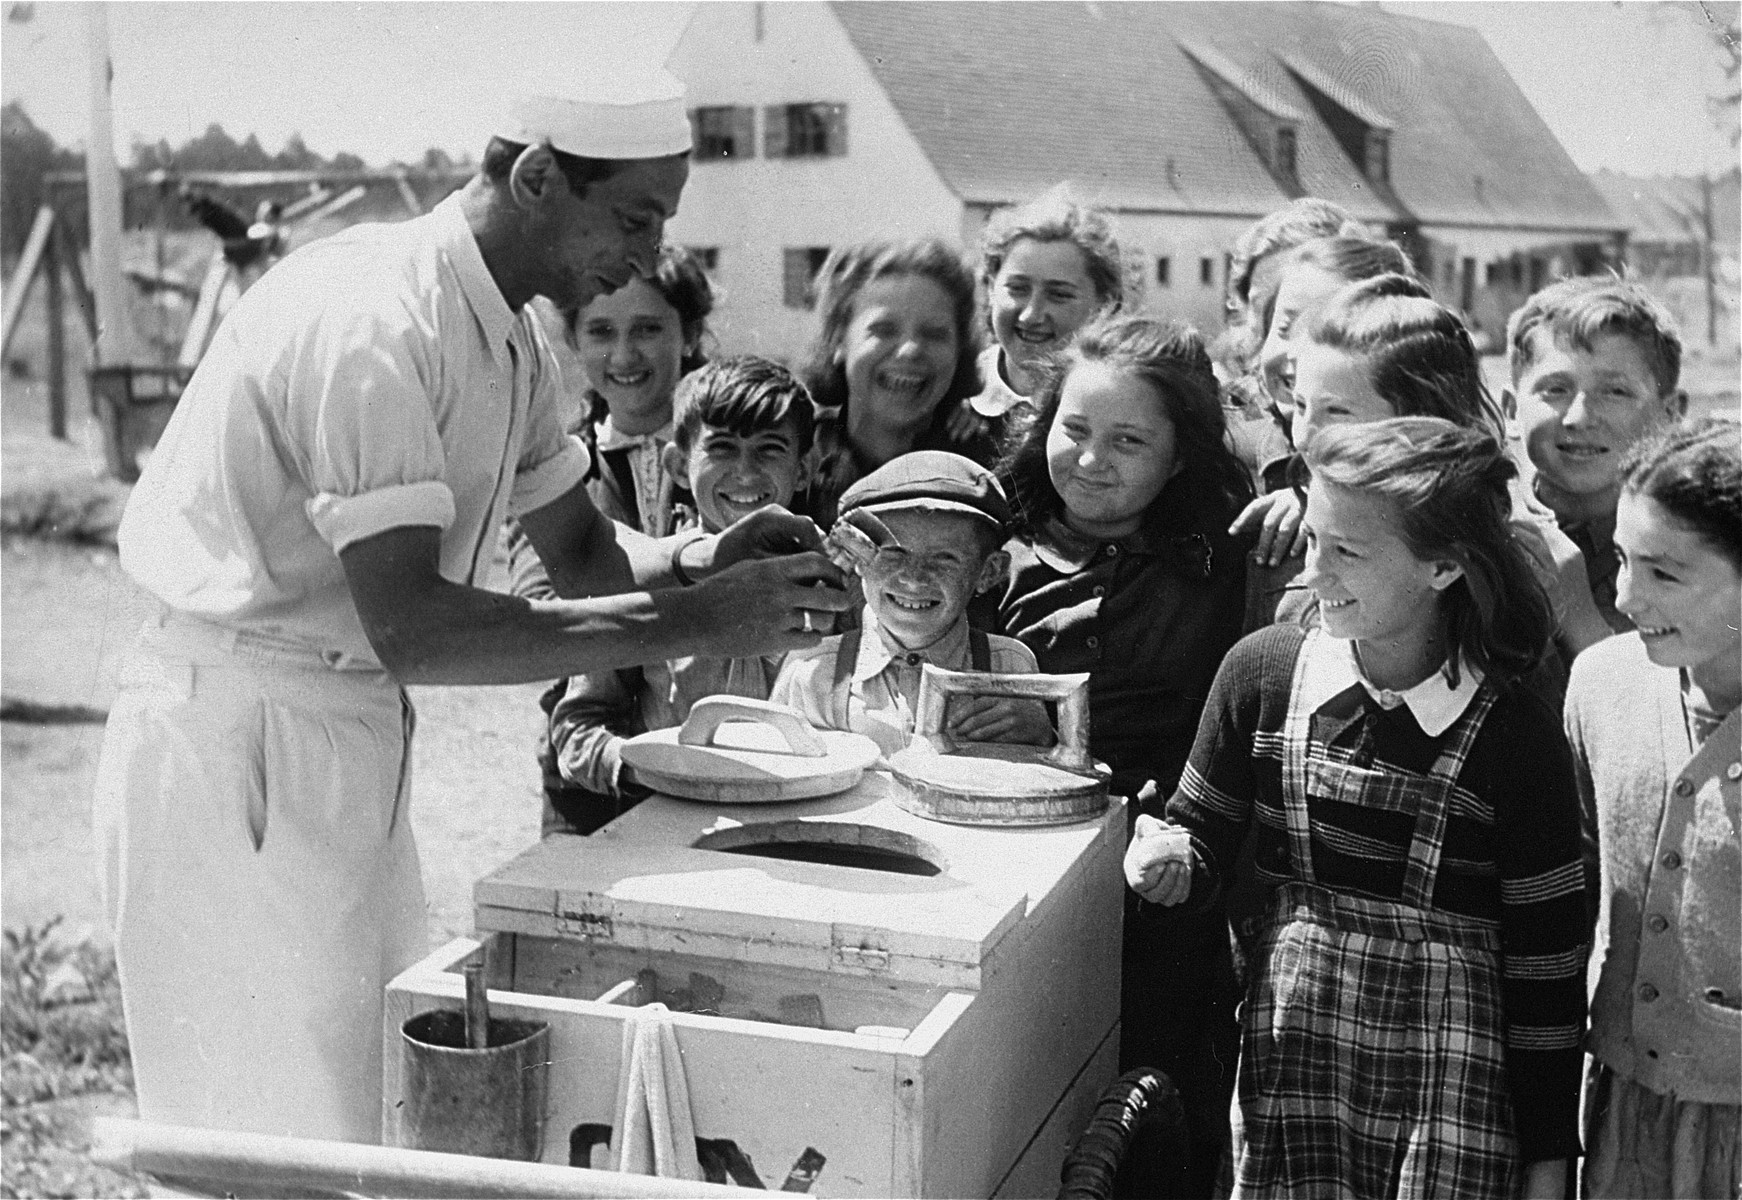 Children wait for ice cream in the Foehrenwald DP camp.    Chaia Libstug is on the extreme right and Nocham Swidler is in the front center.  Paula Lebovics is second from the right in the front.